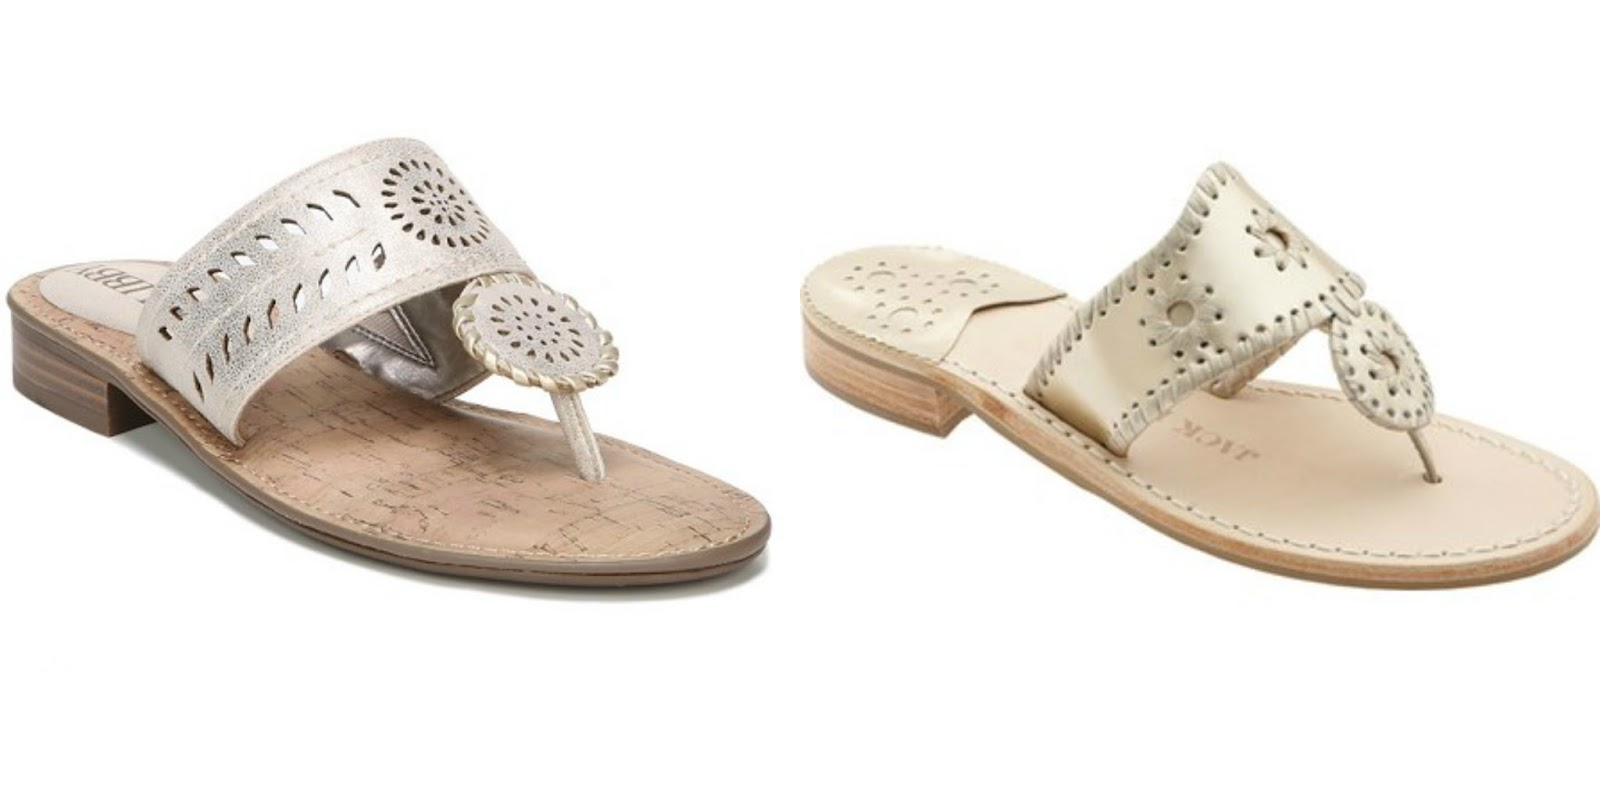 9b950c51238 Franish  designer sandals at target prices